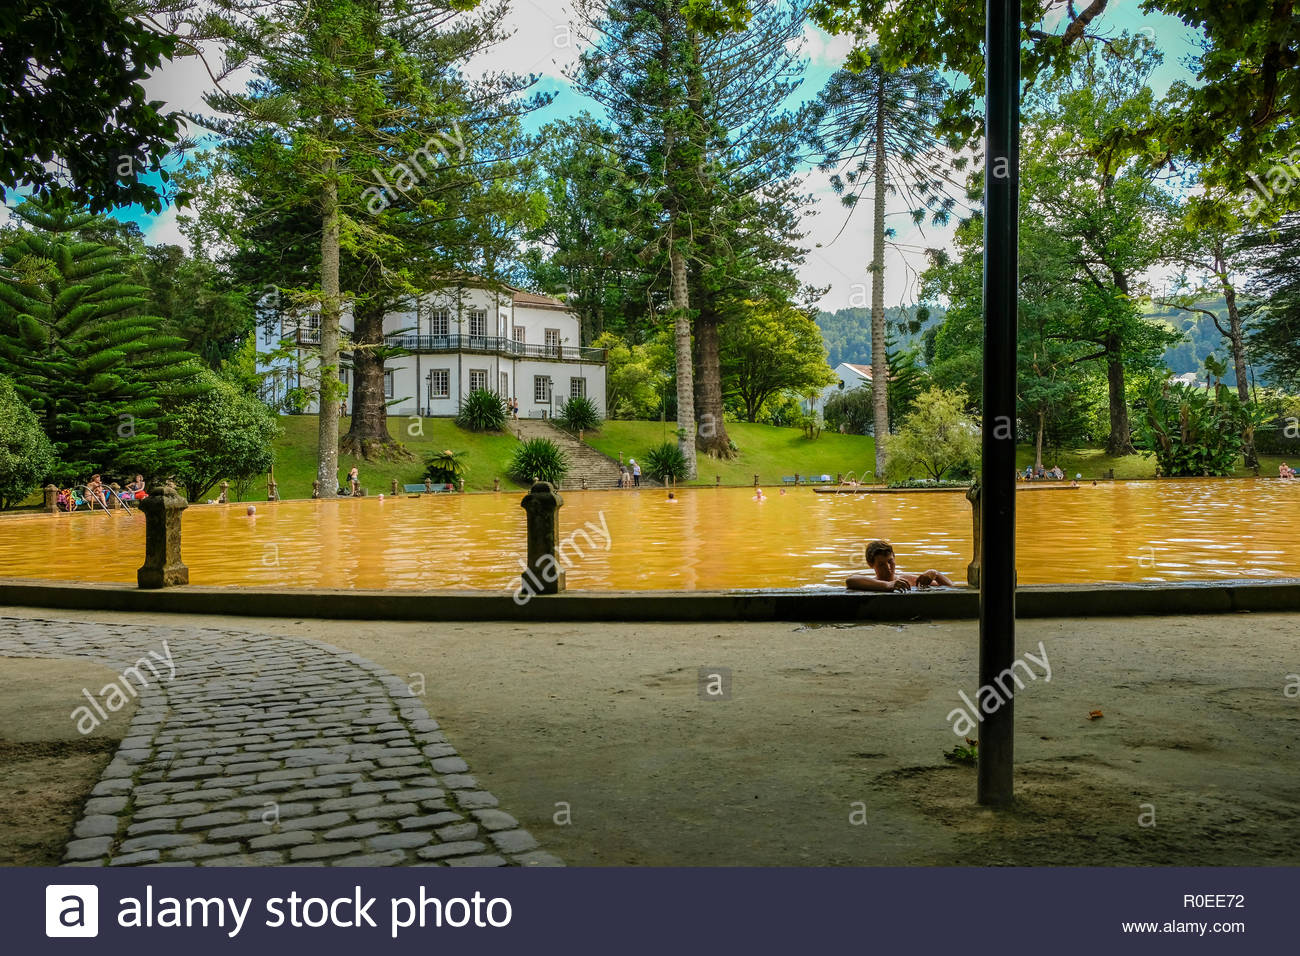 Hot Spring Water Swimming Pool, Parque Terra Nostra, Furnas, Ilha São Miguel, Azores, Portugal - Stock Image